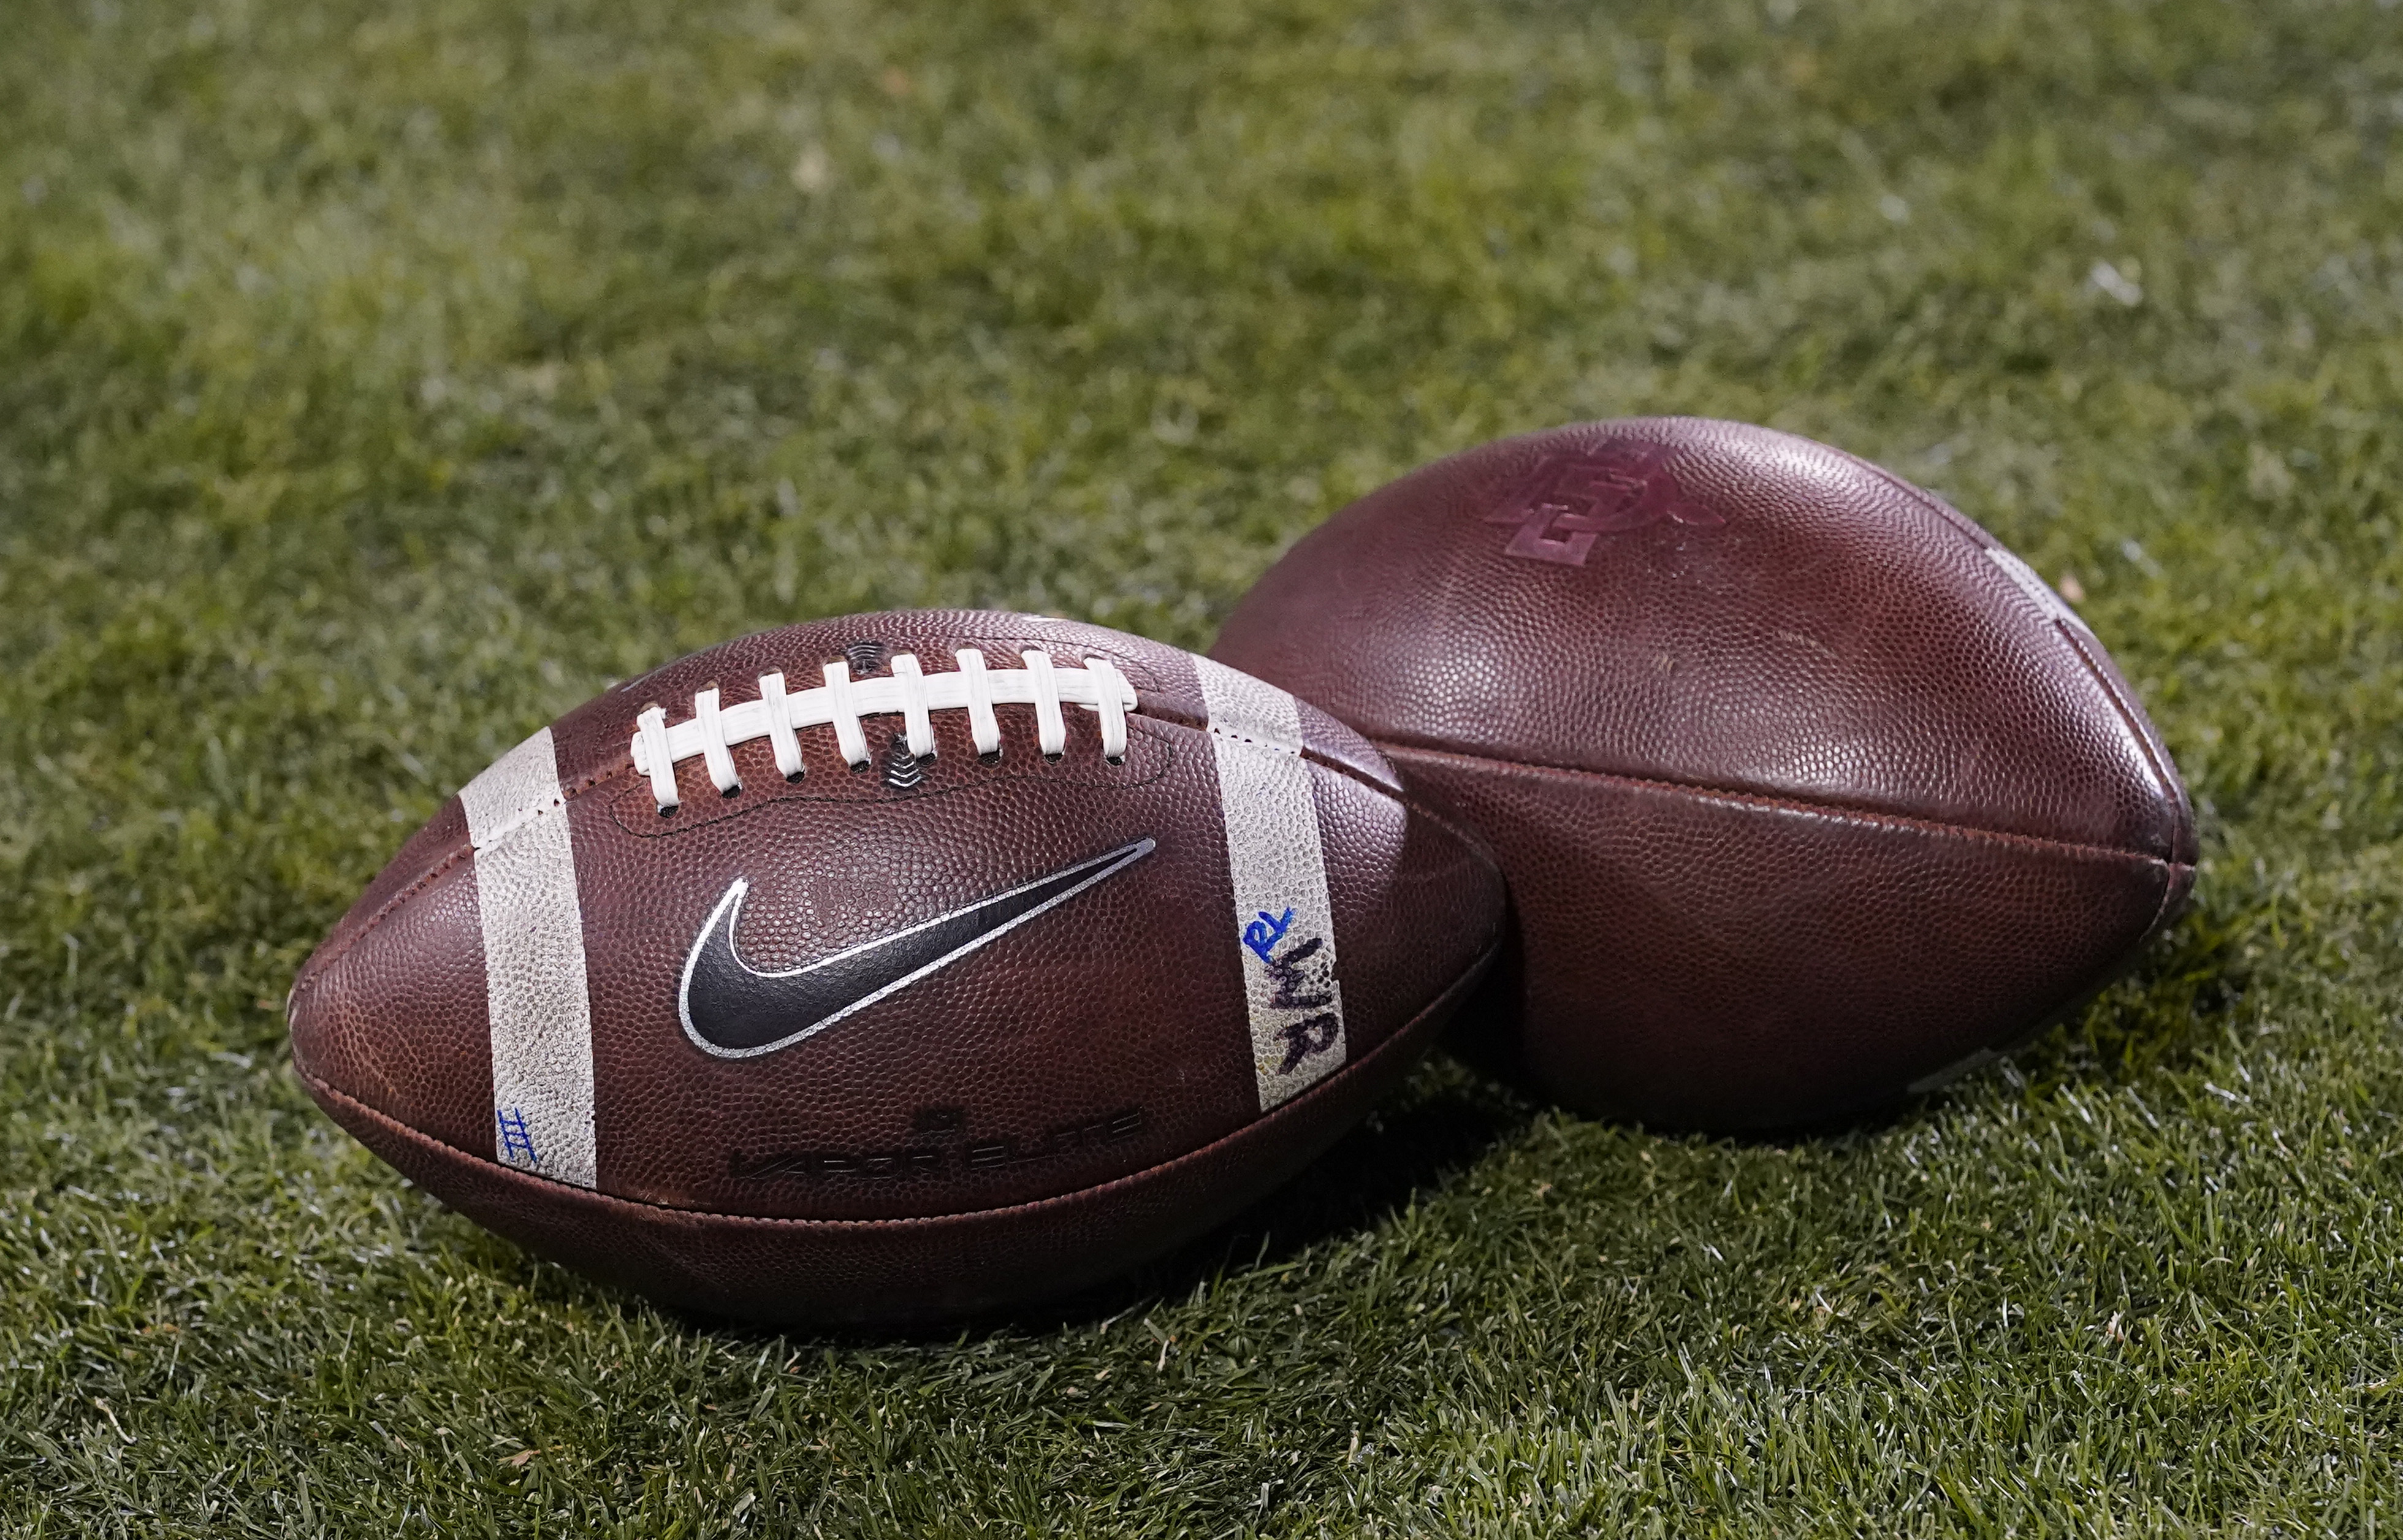 NCAA football: College players could end up stranded in 2021